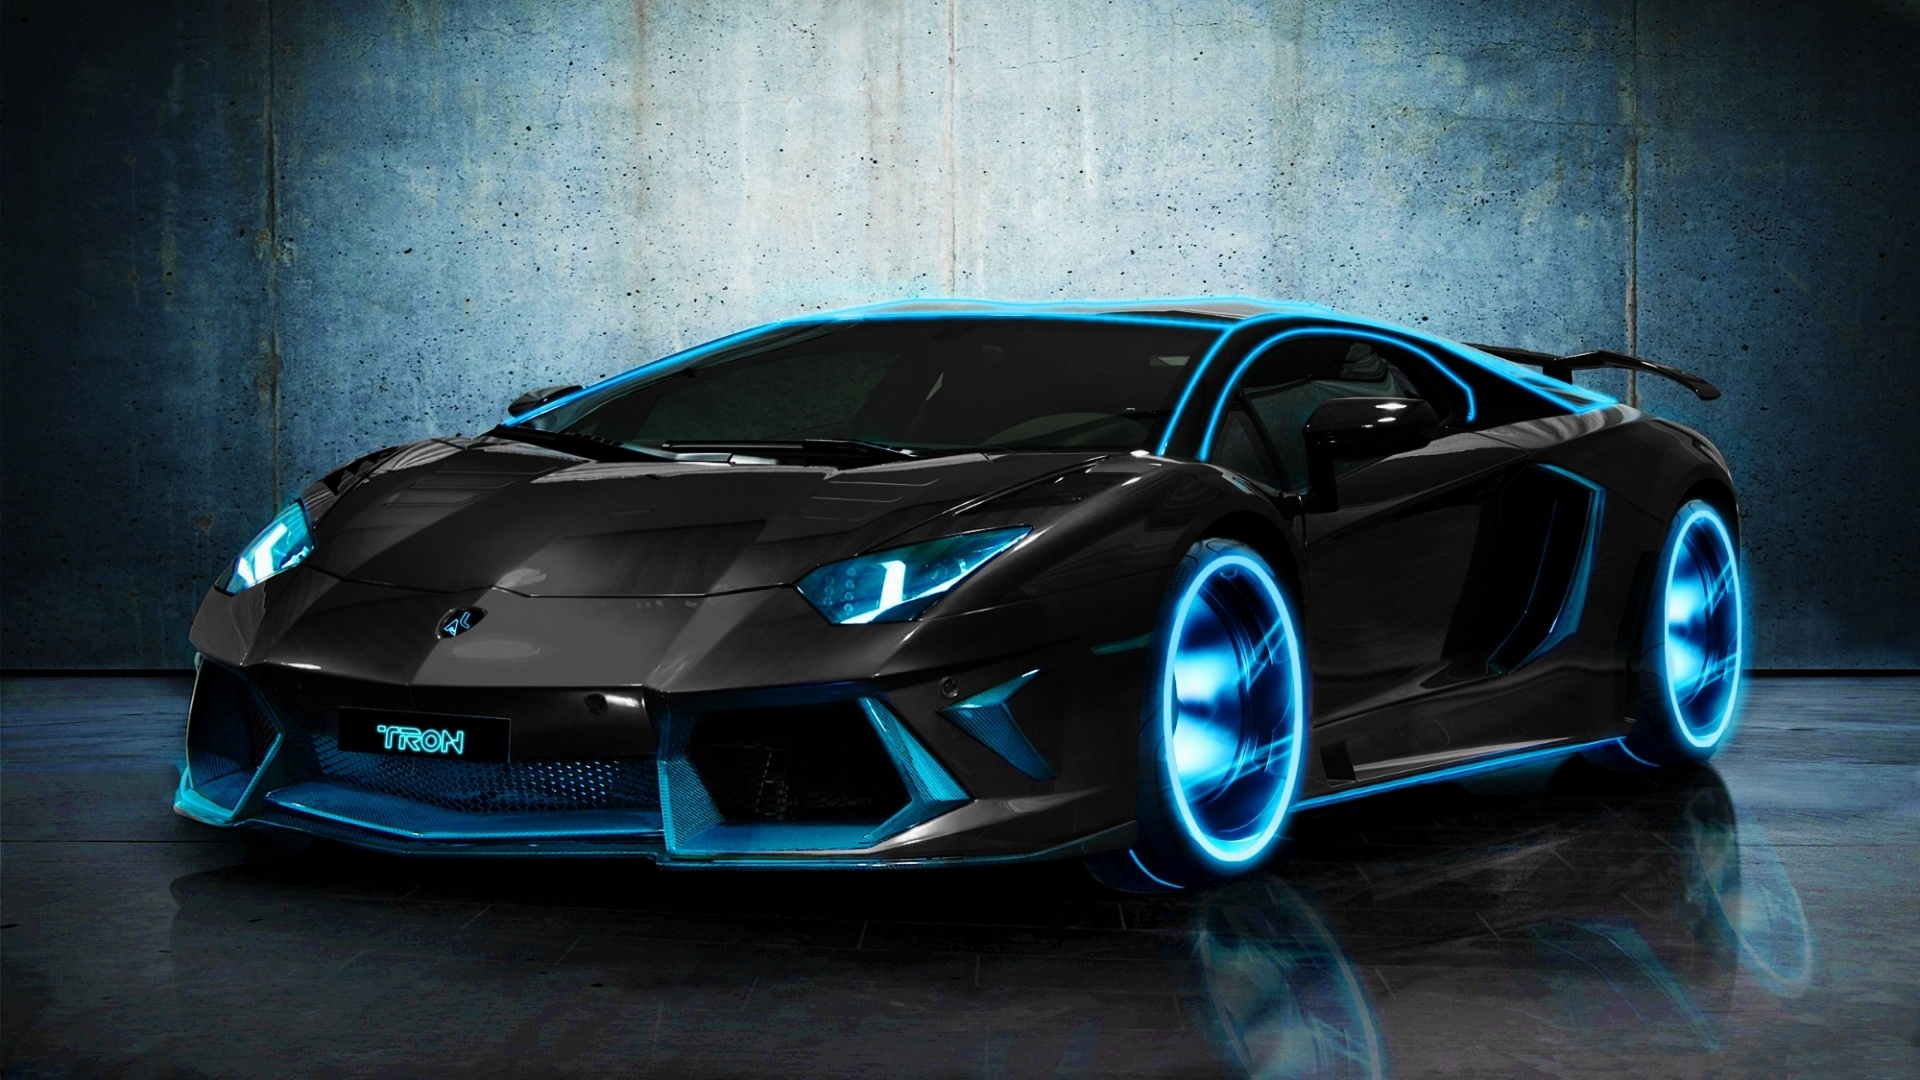 Aventador Car Wallpaper X Hd Wallpaper Cars Lamborghini X